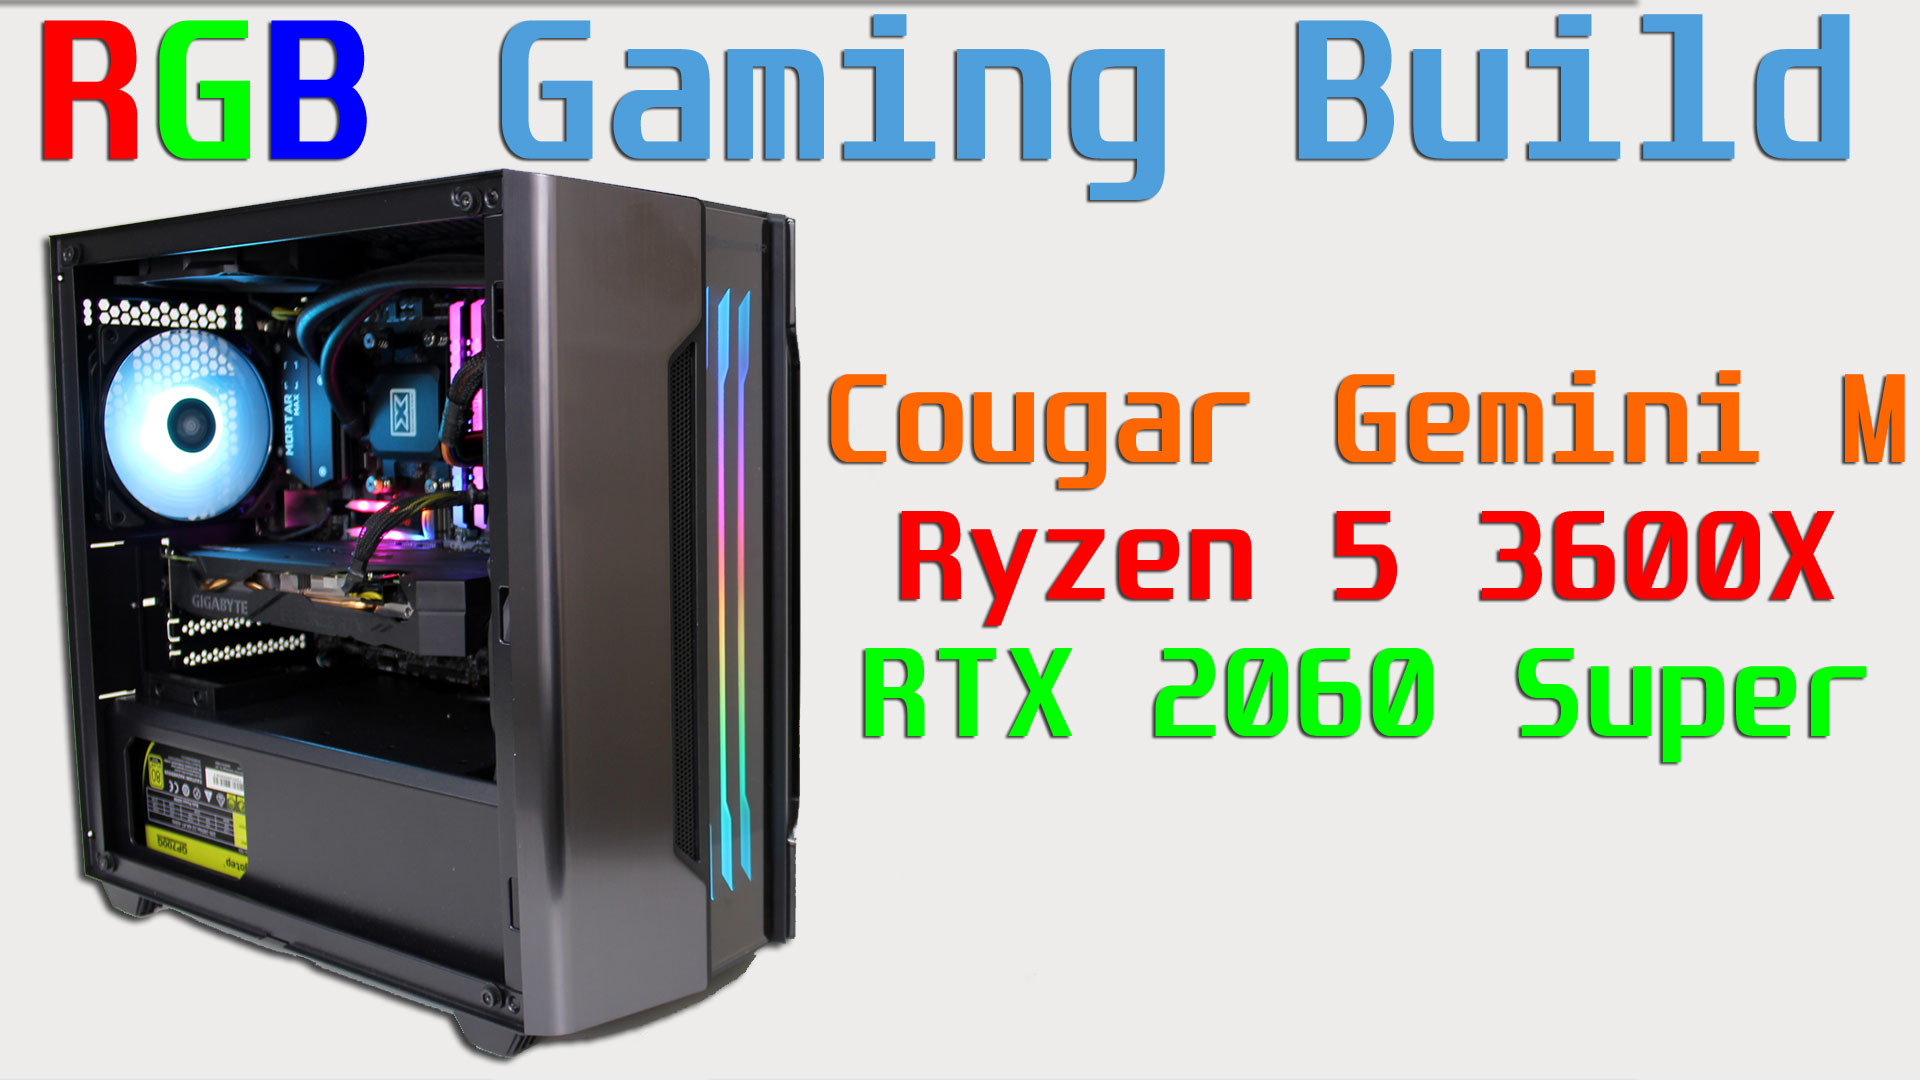 Cougar Gemini M Build